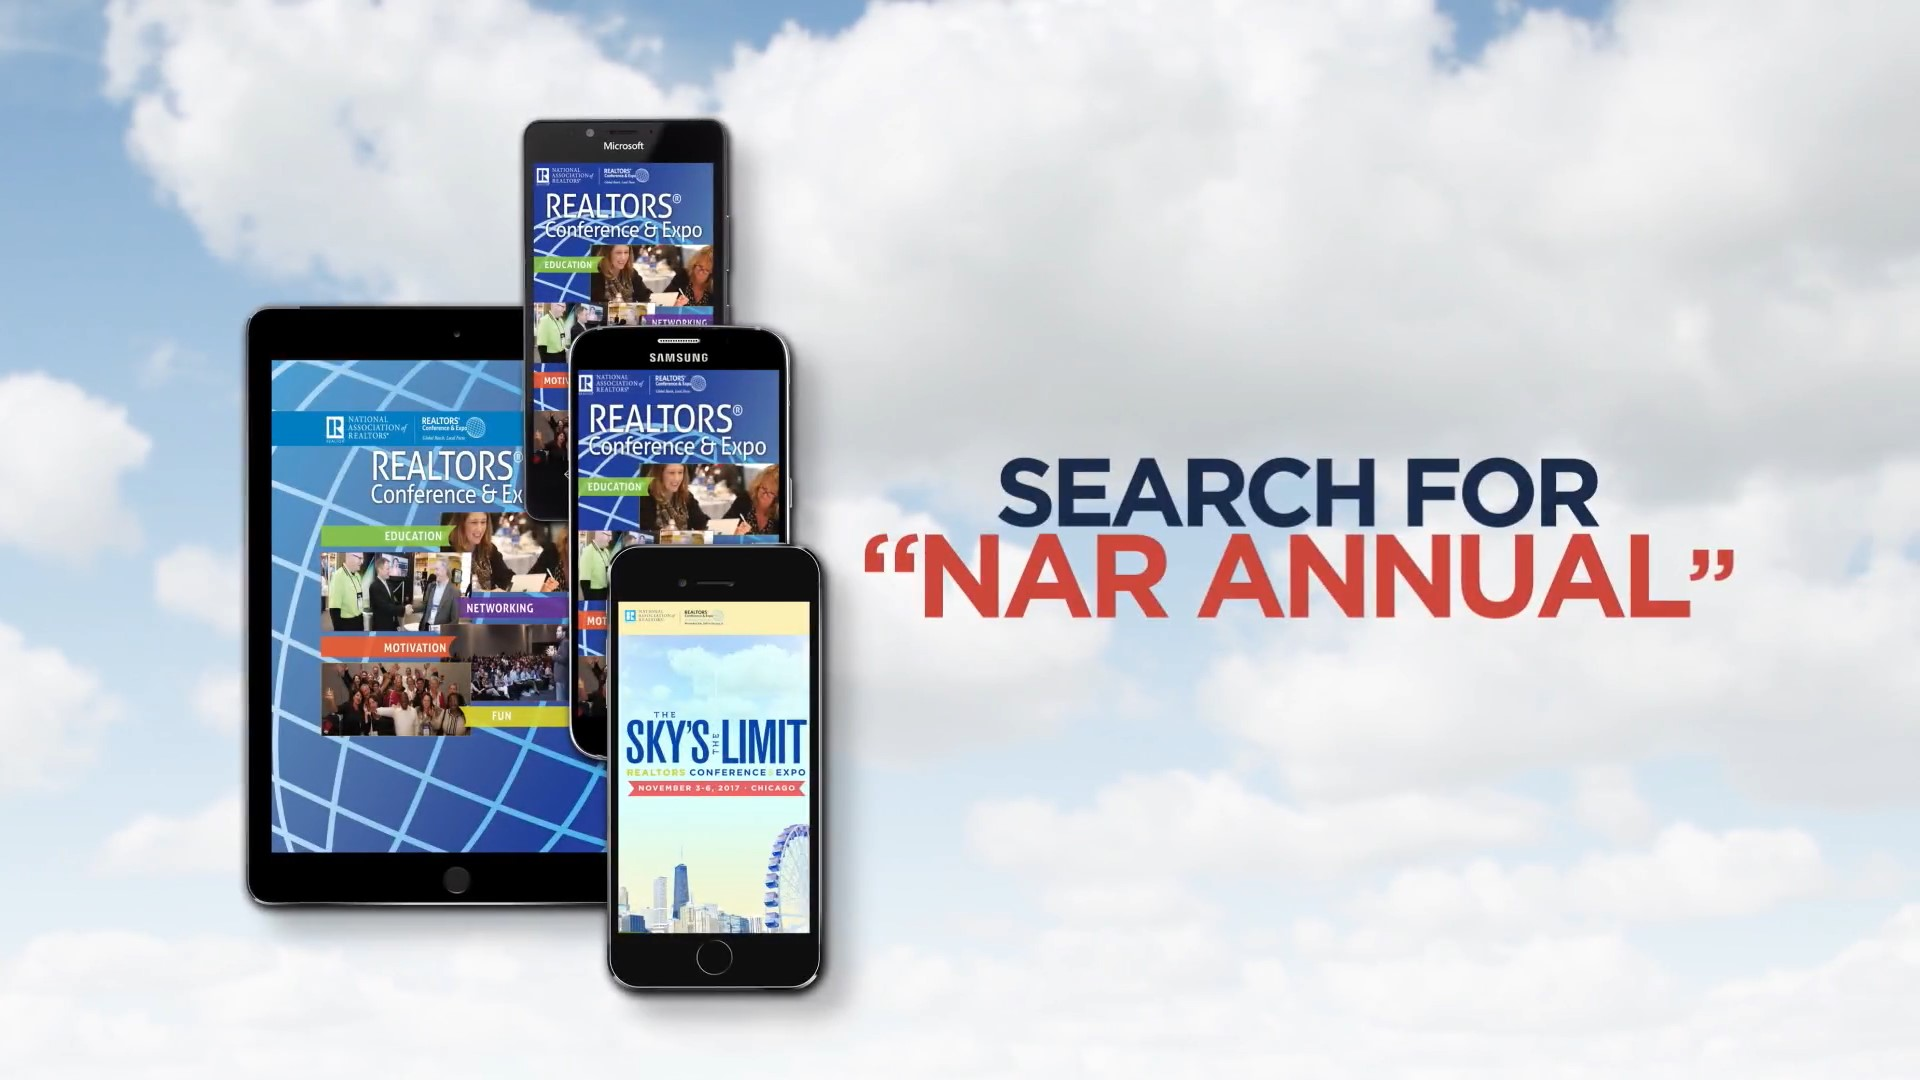 Search for NAR ANNUAL